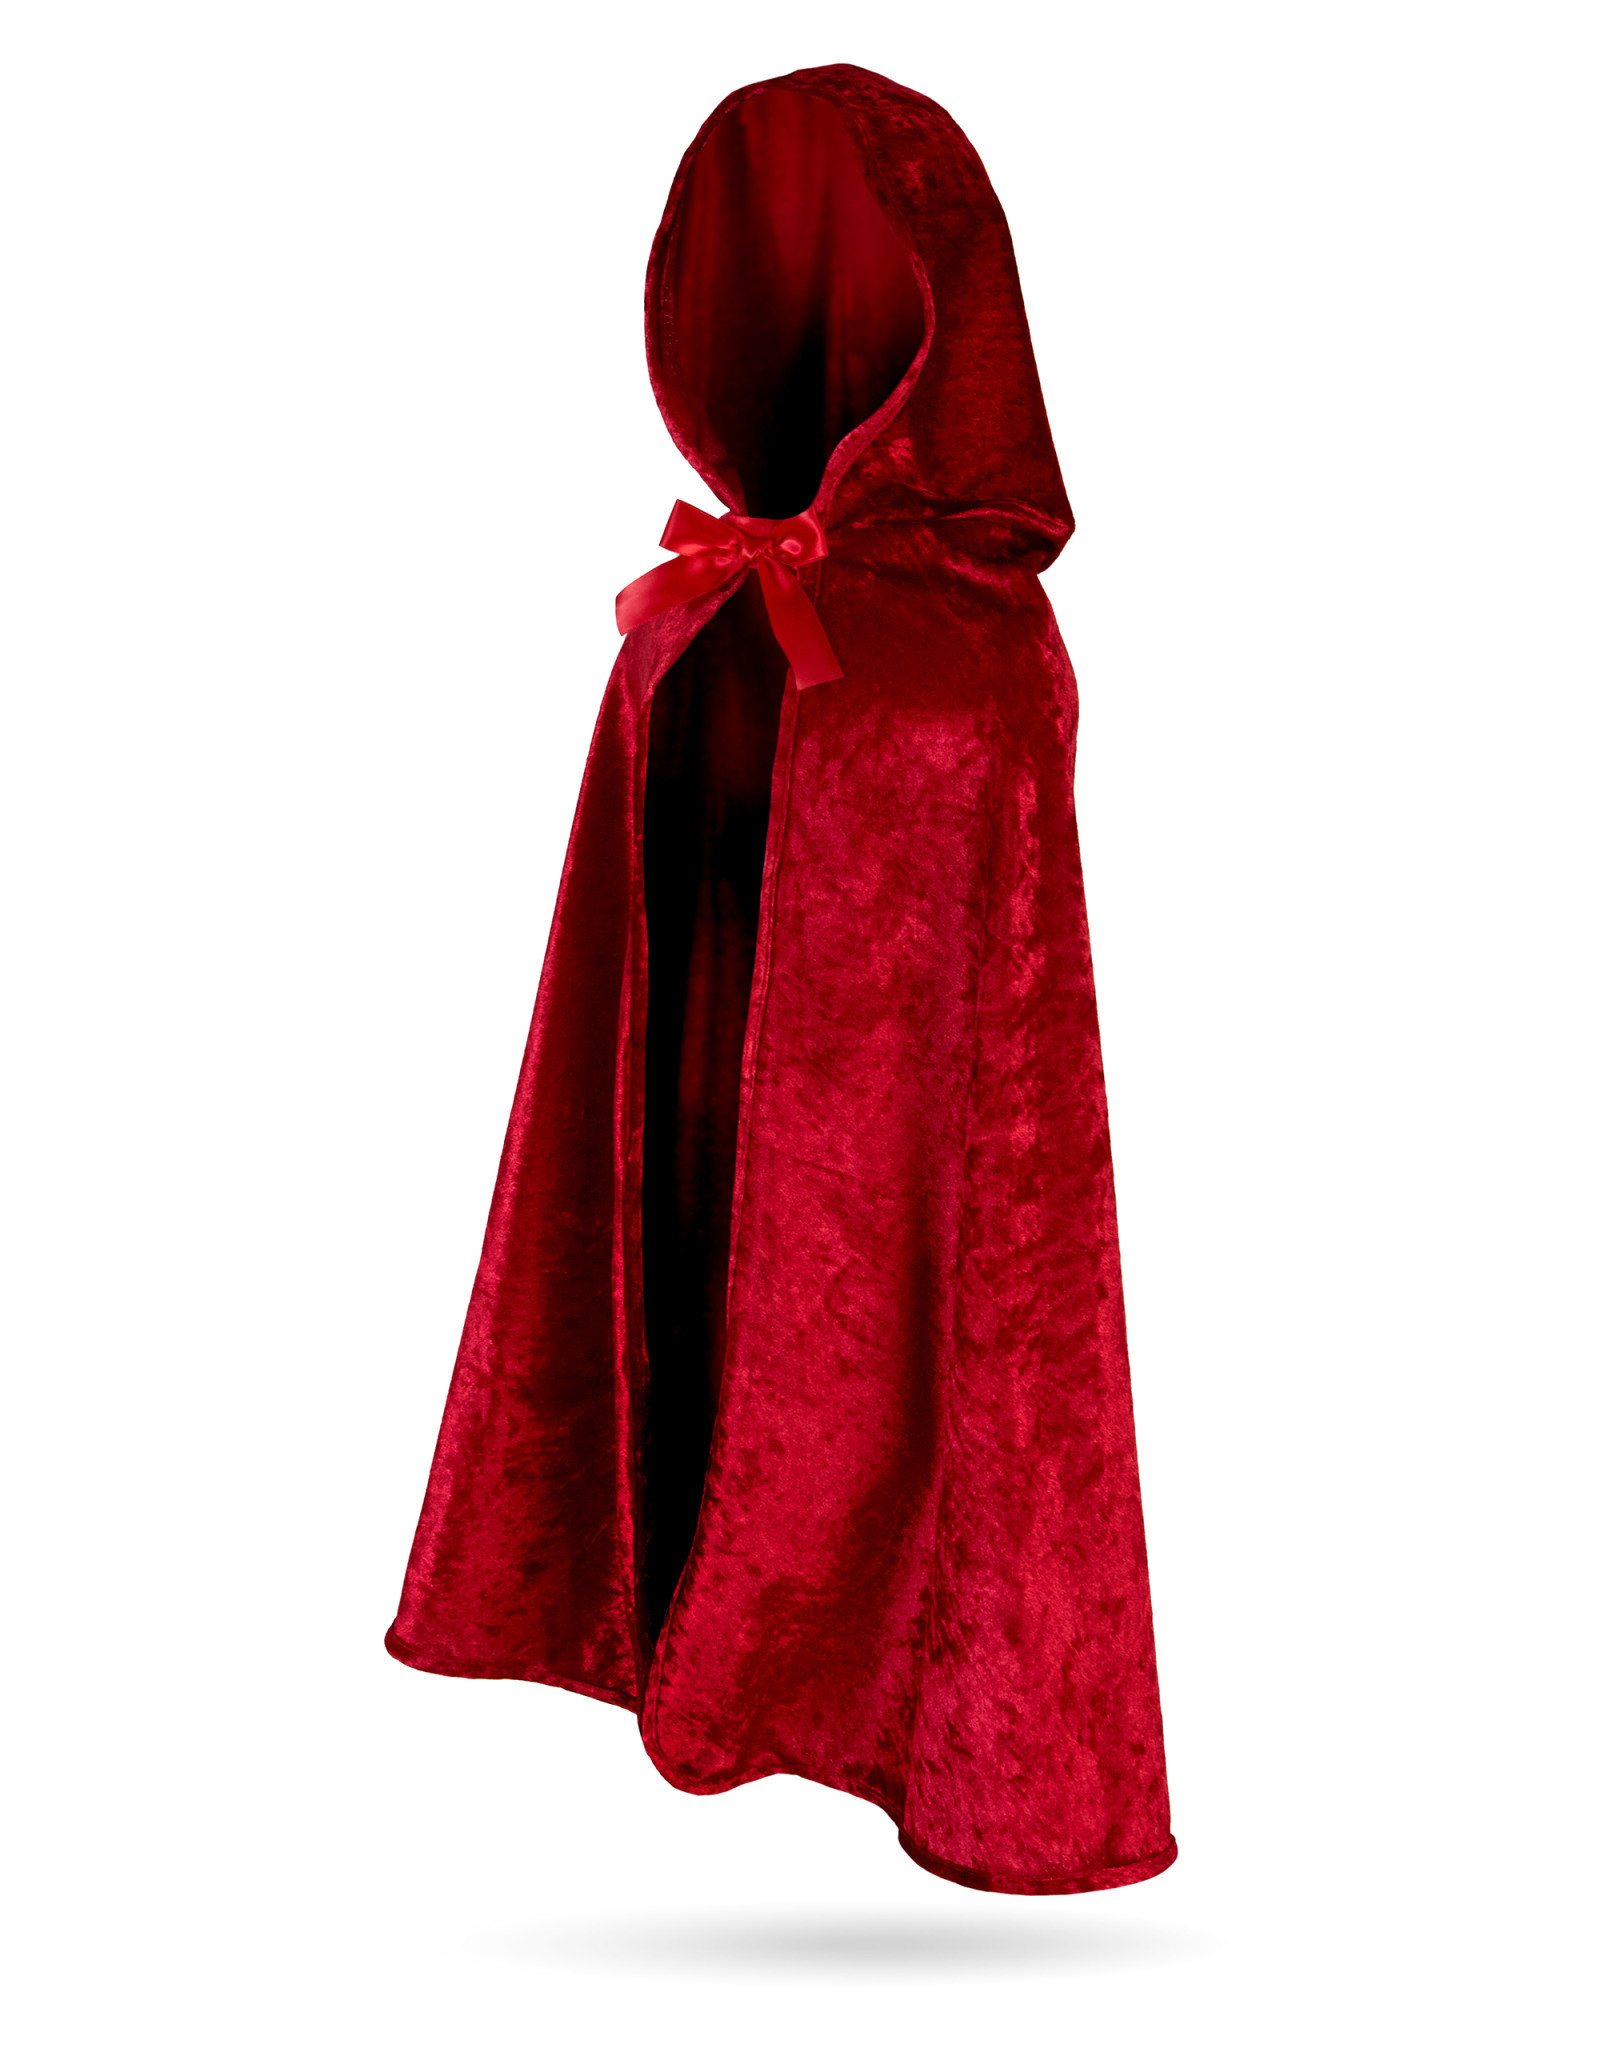 Great Pretenders Little Red Riding Cape, Size 5-6